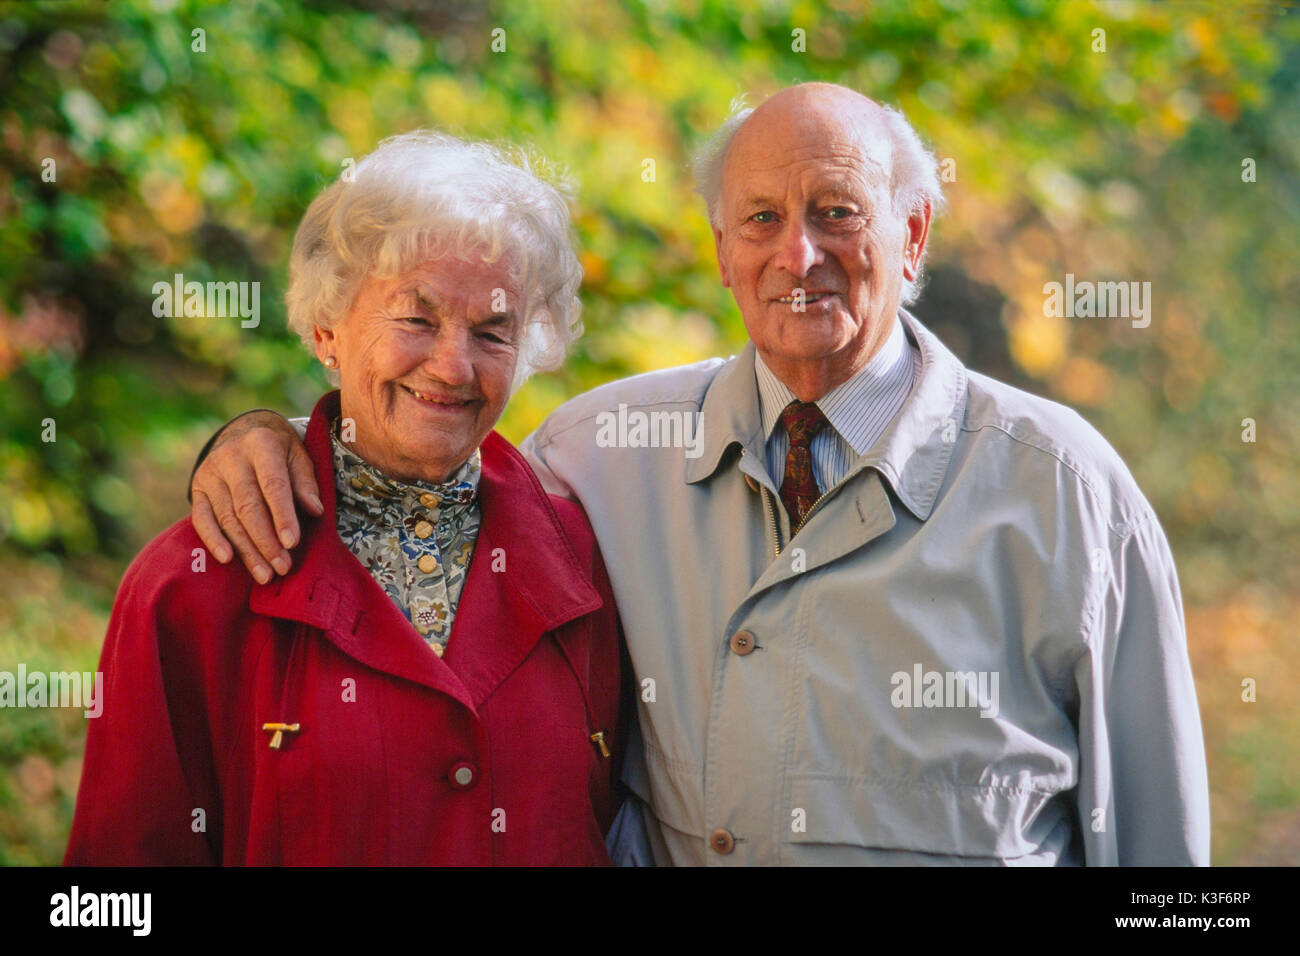 Portrait of old married couple, man places his arm around the woman - Stock Image